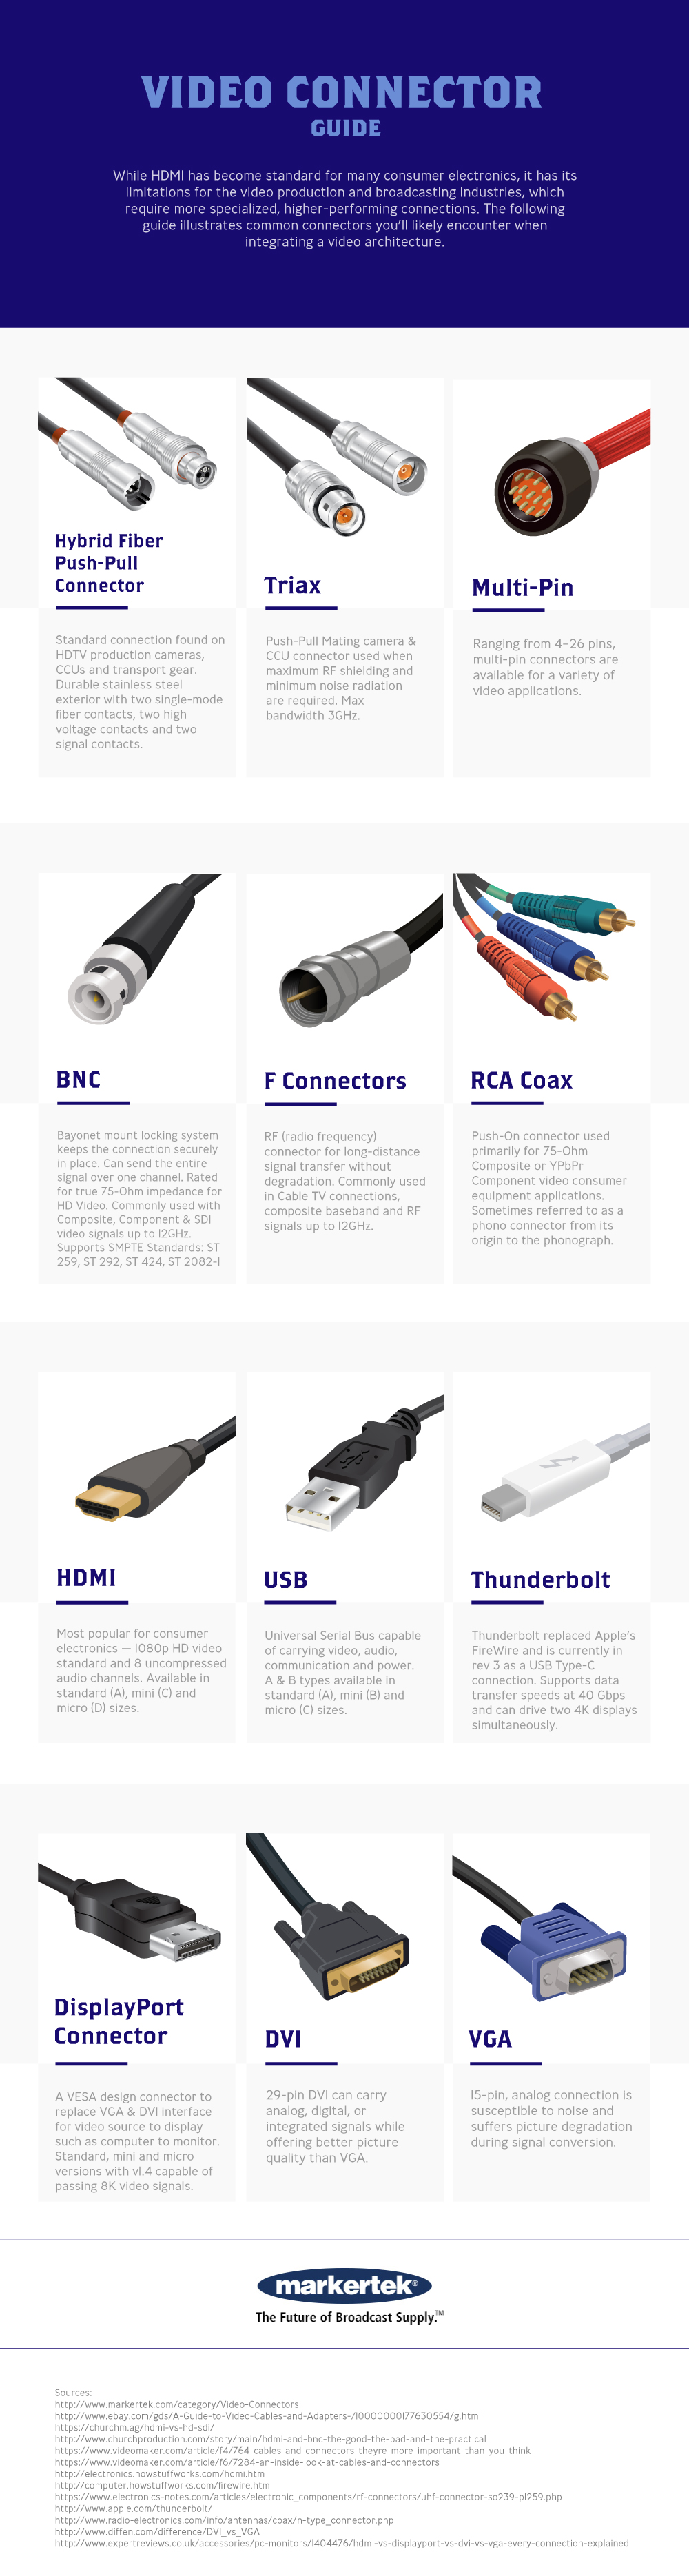 Video Connector Guide Infographic